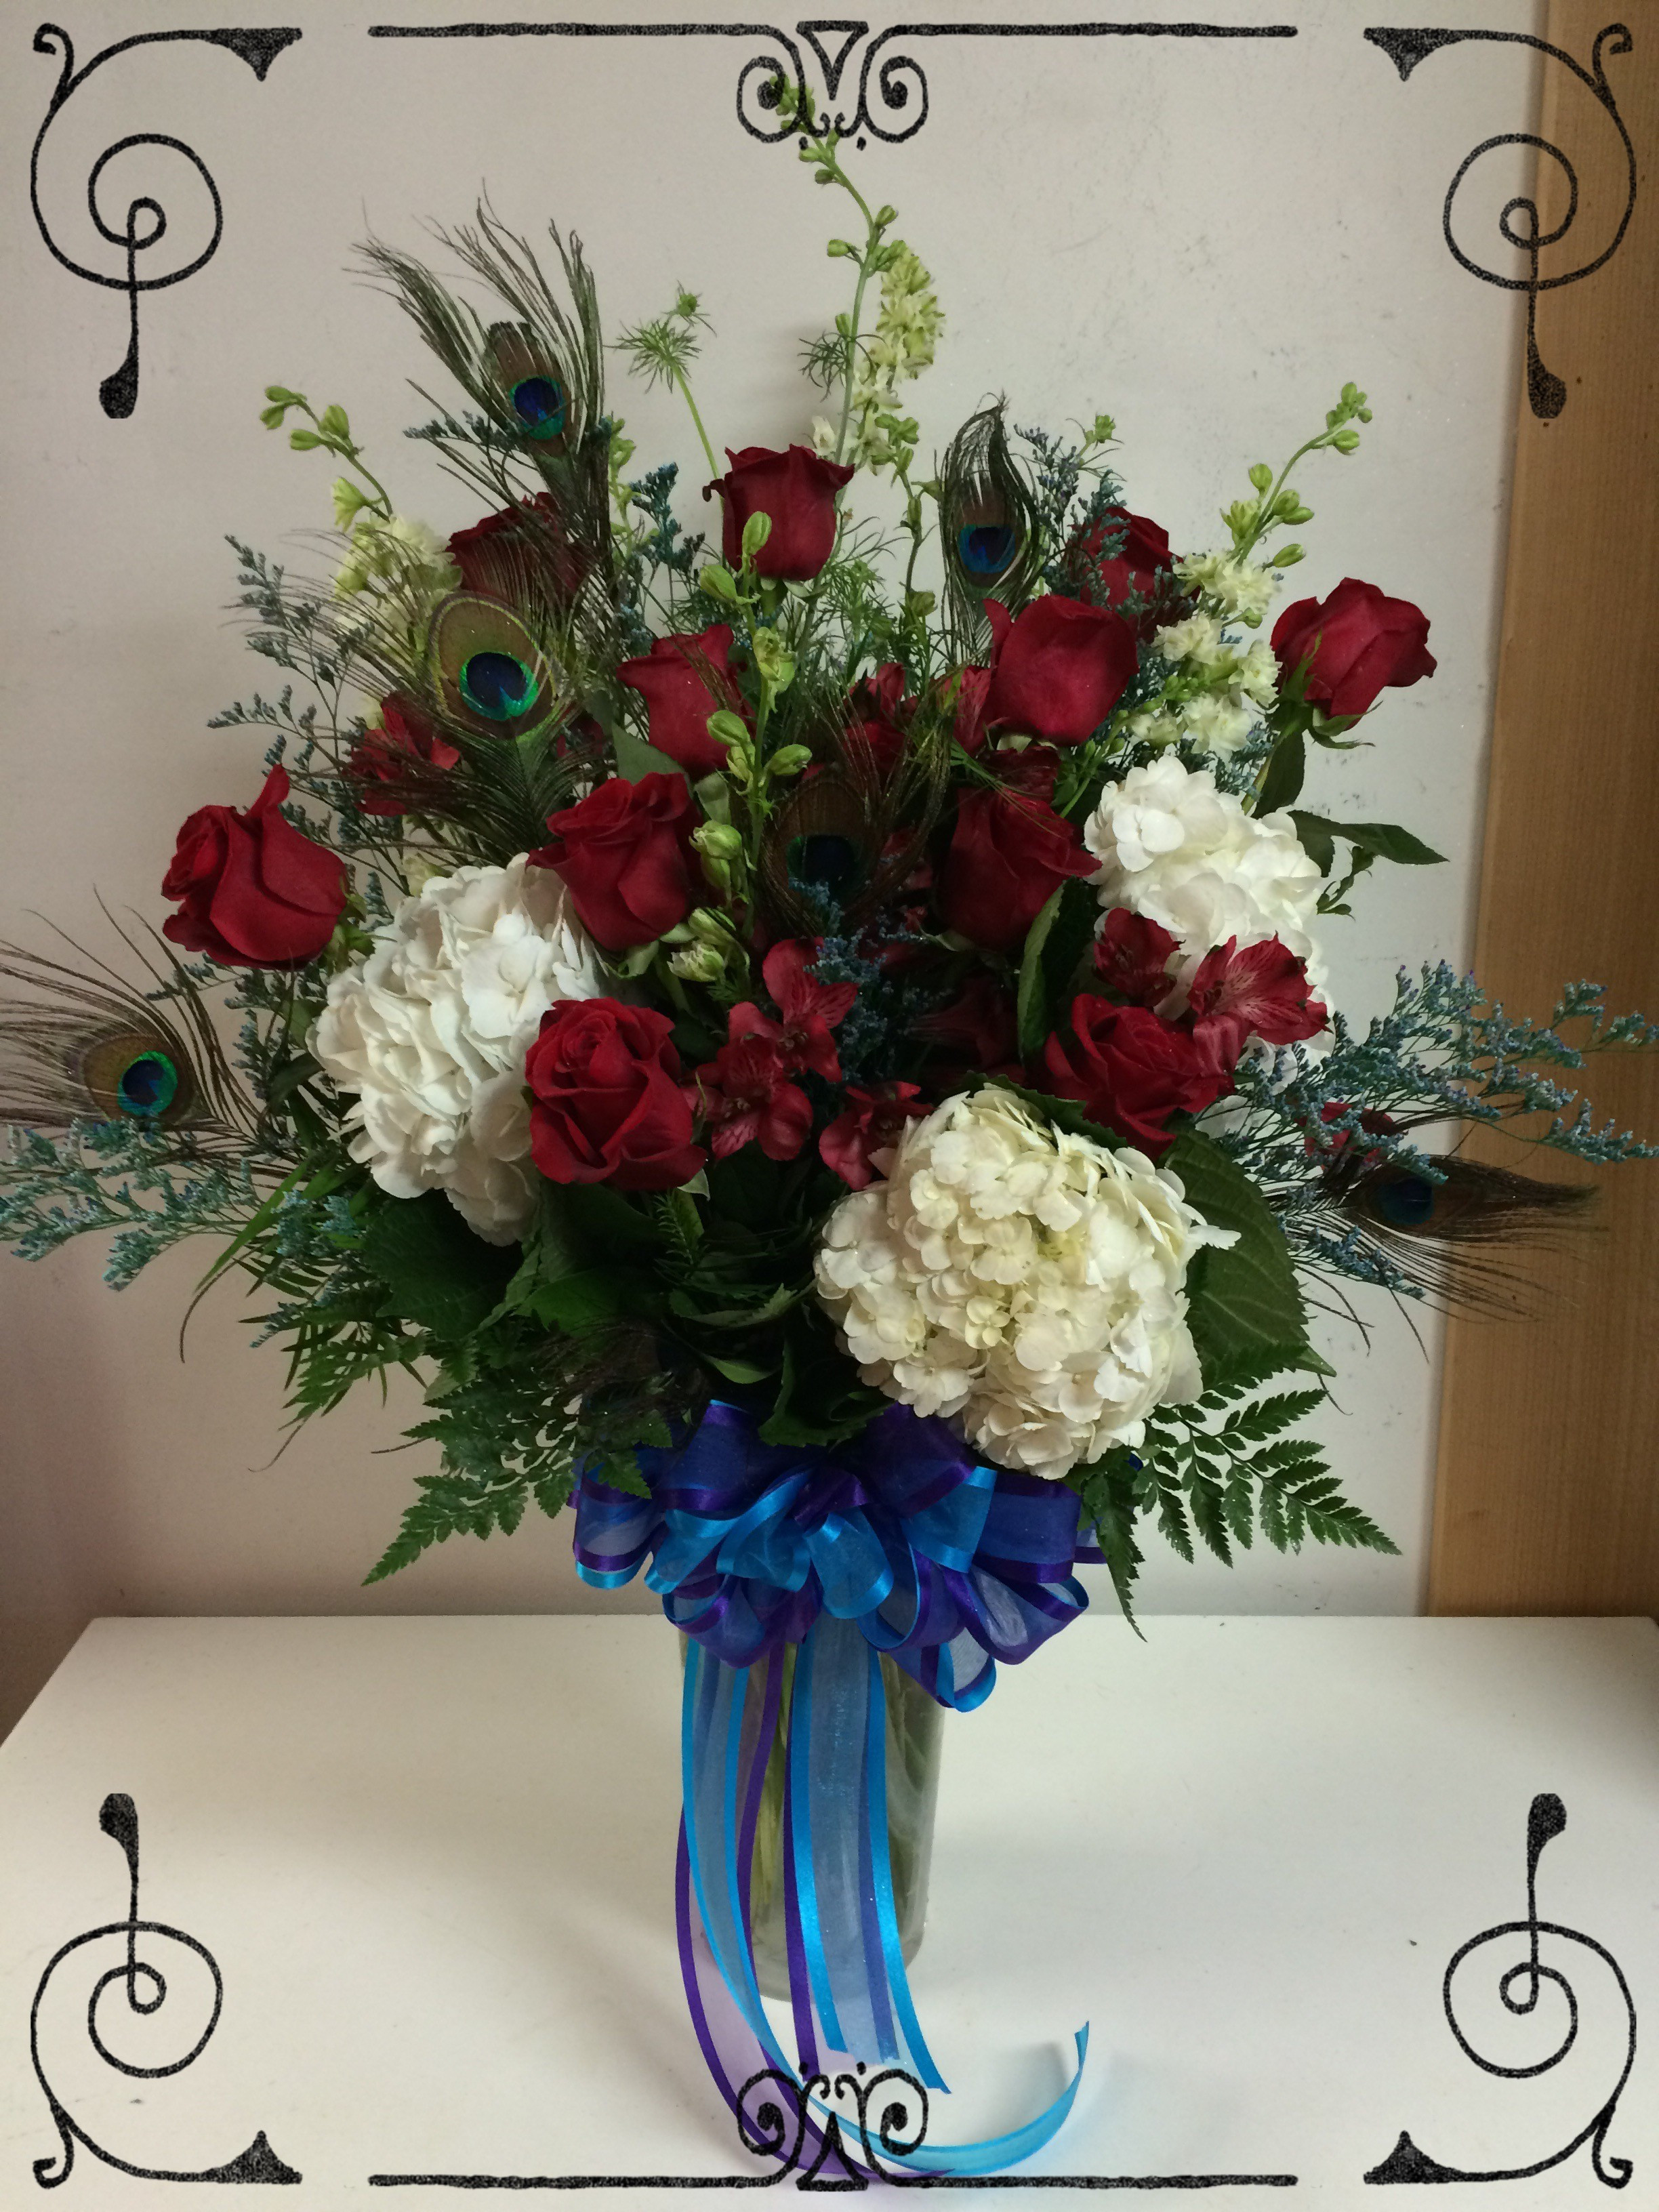 Next Day Delivery ADD TO FAVORITES Peacock Roses & Hydrangeas